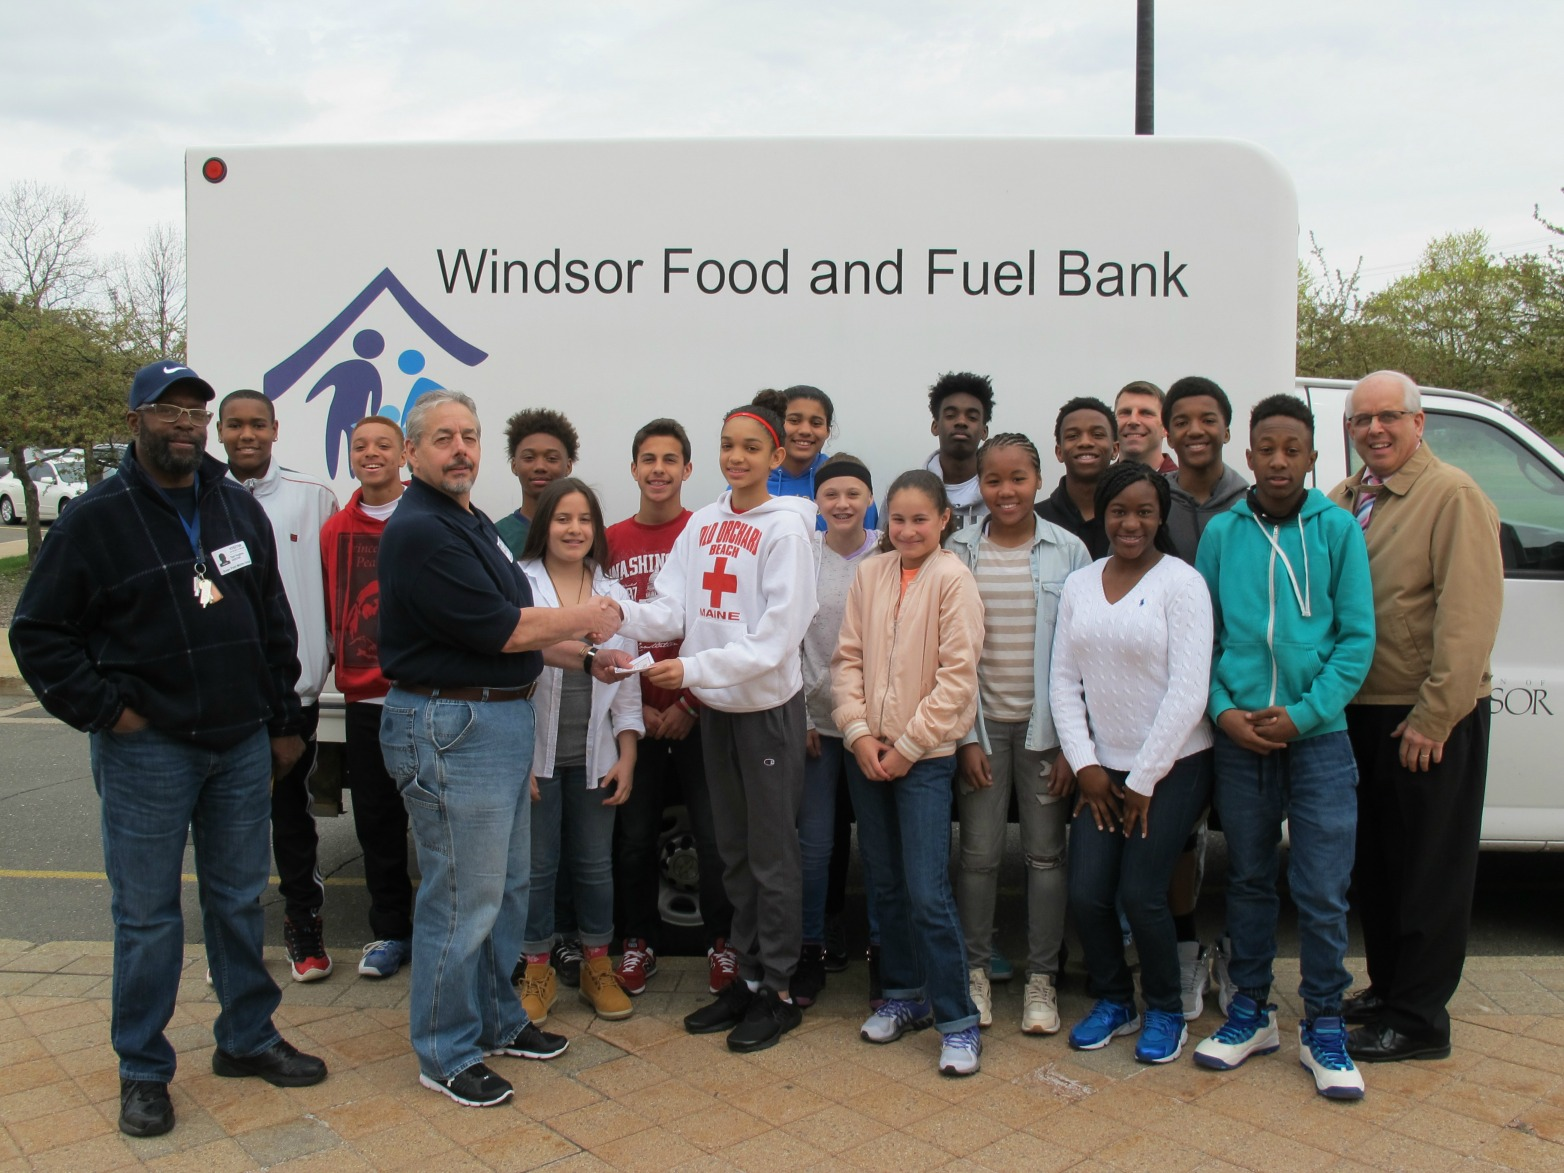 Student/Staff Basketball Game Raises Money for Windsor Food and Fuel Bank